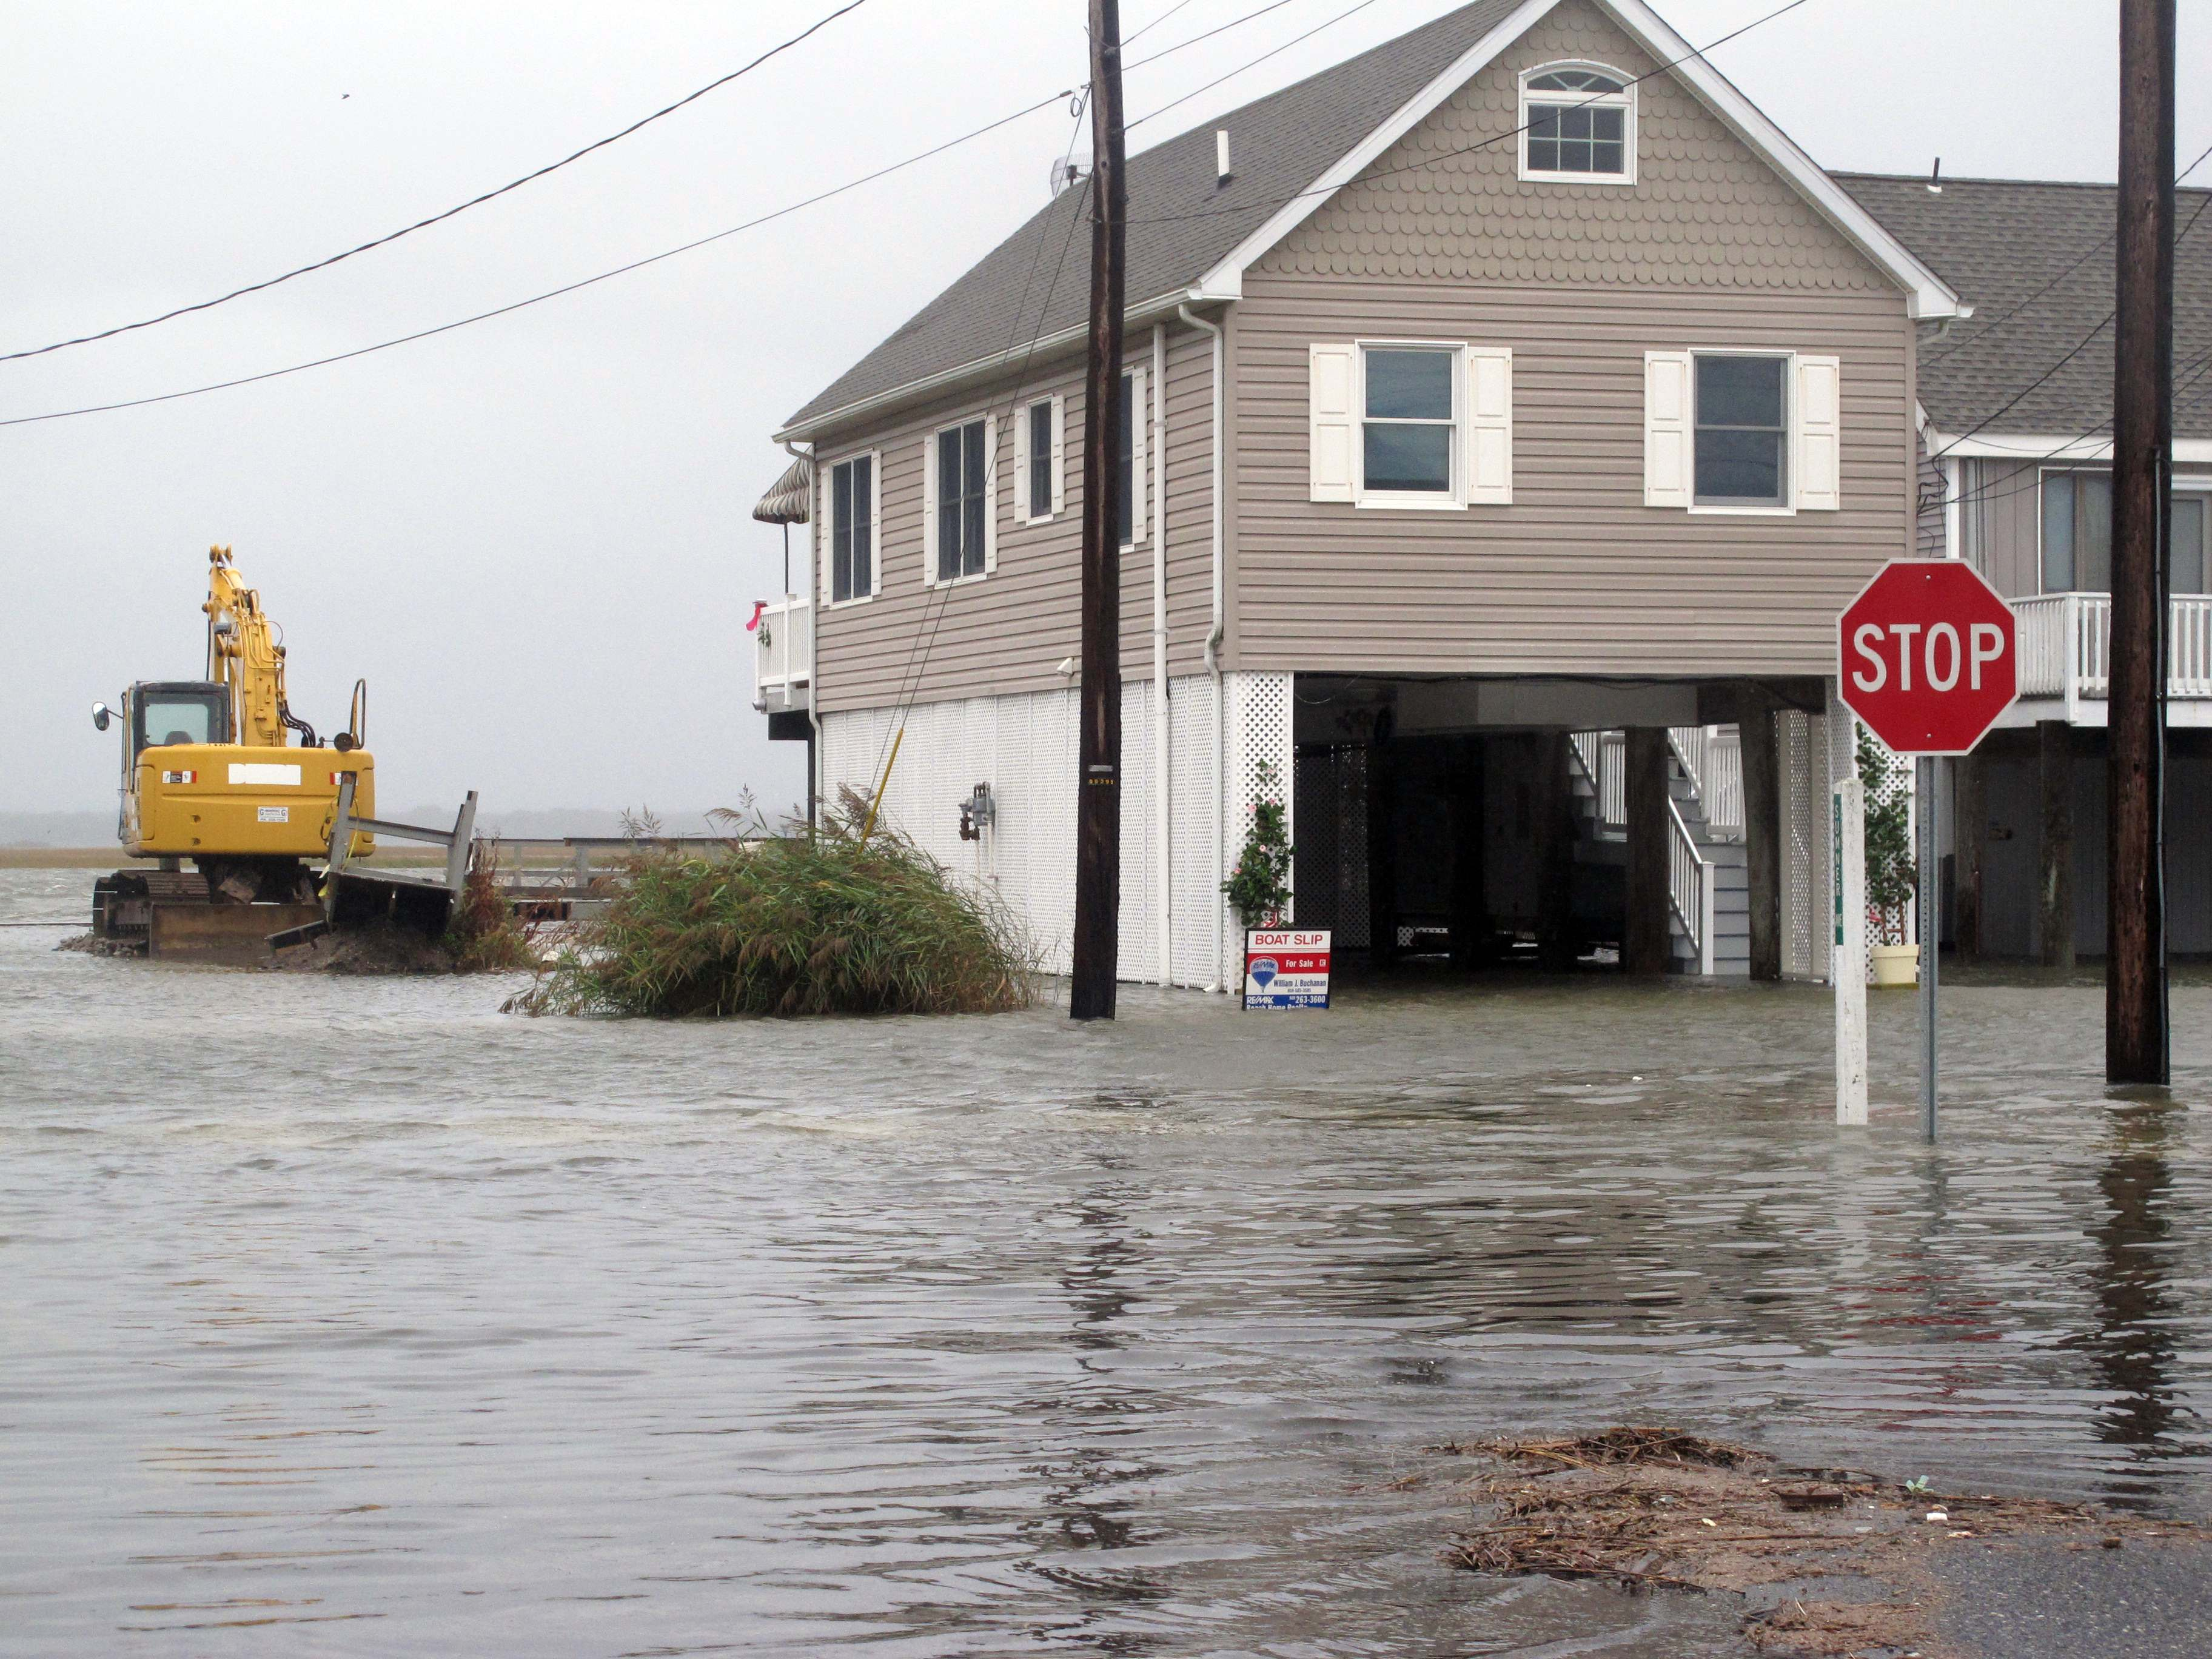 Flood waters enveloped this neighborhood in the Strathmere section of Upper Township N.J. on Friday Oct. 2, 2015.